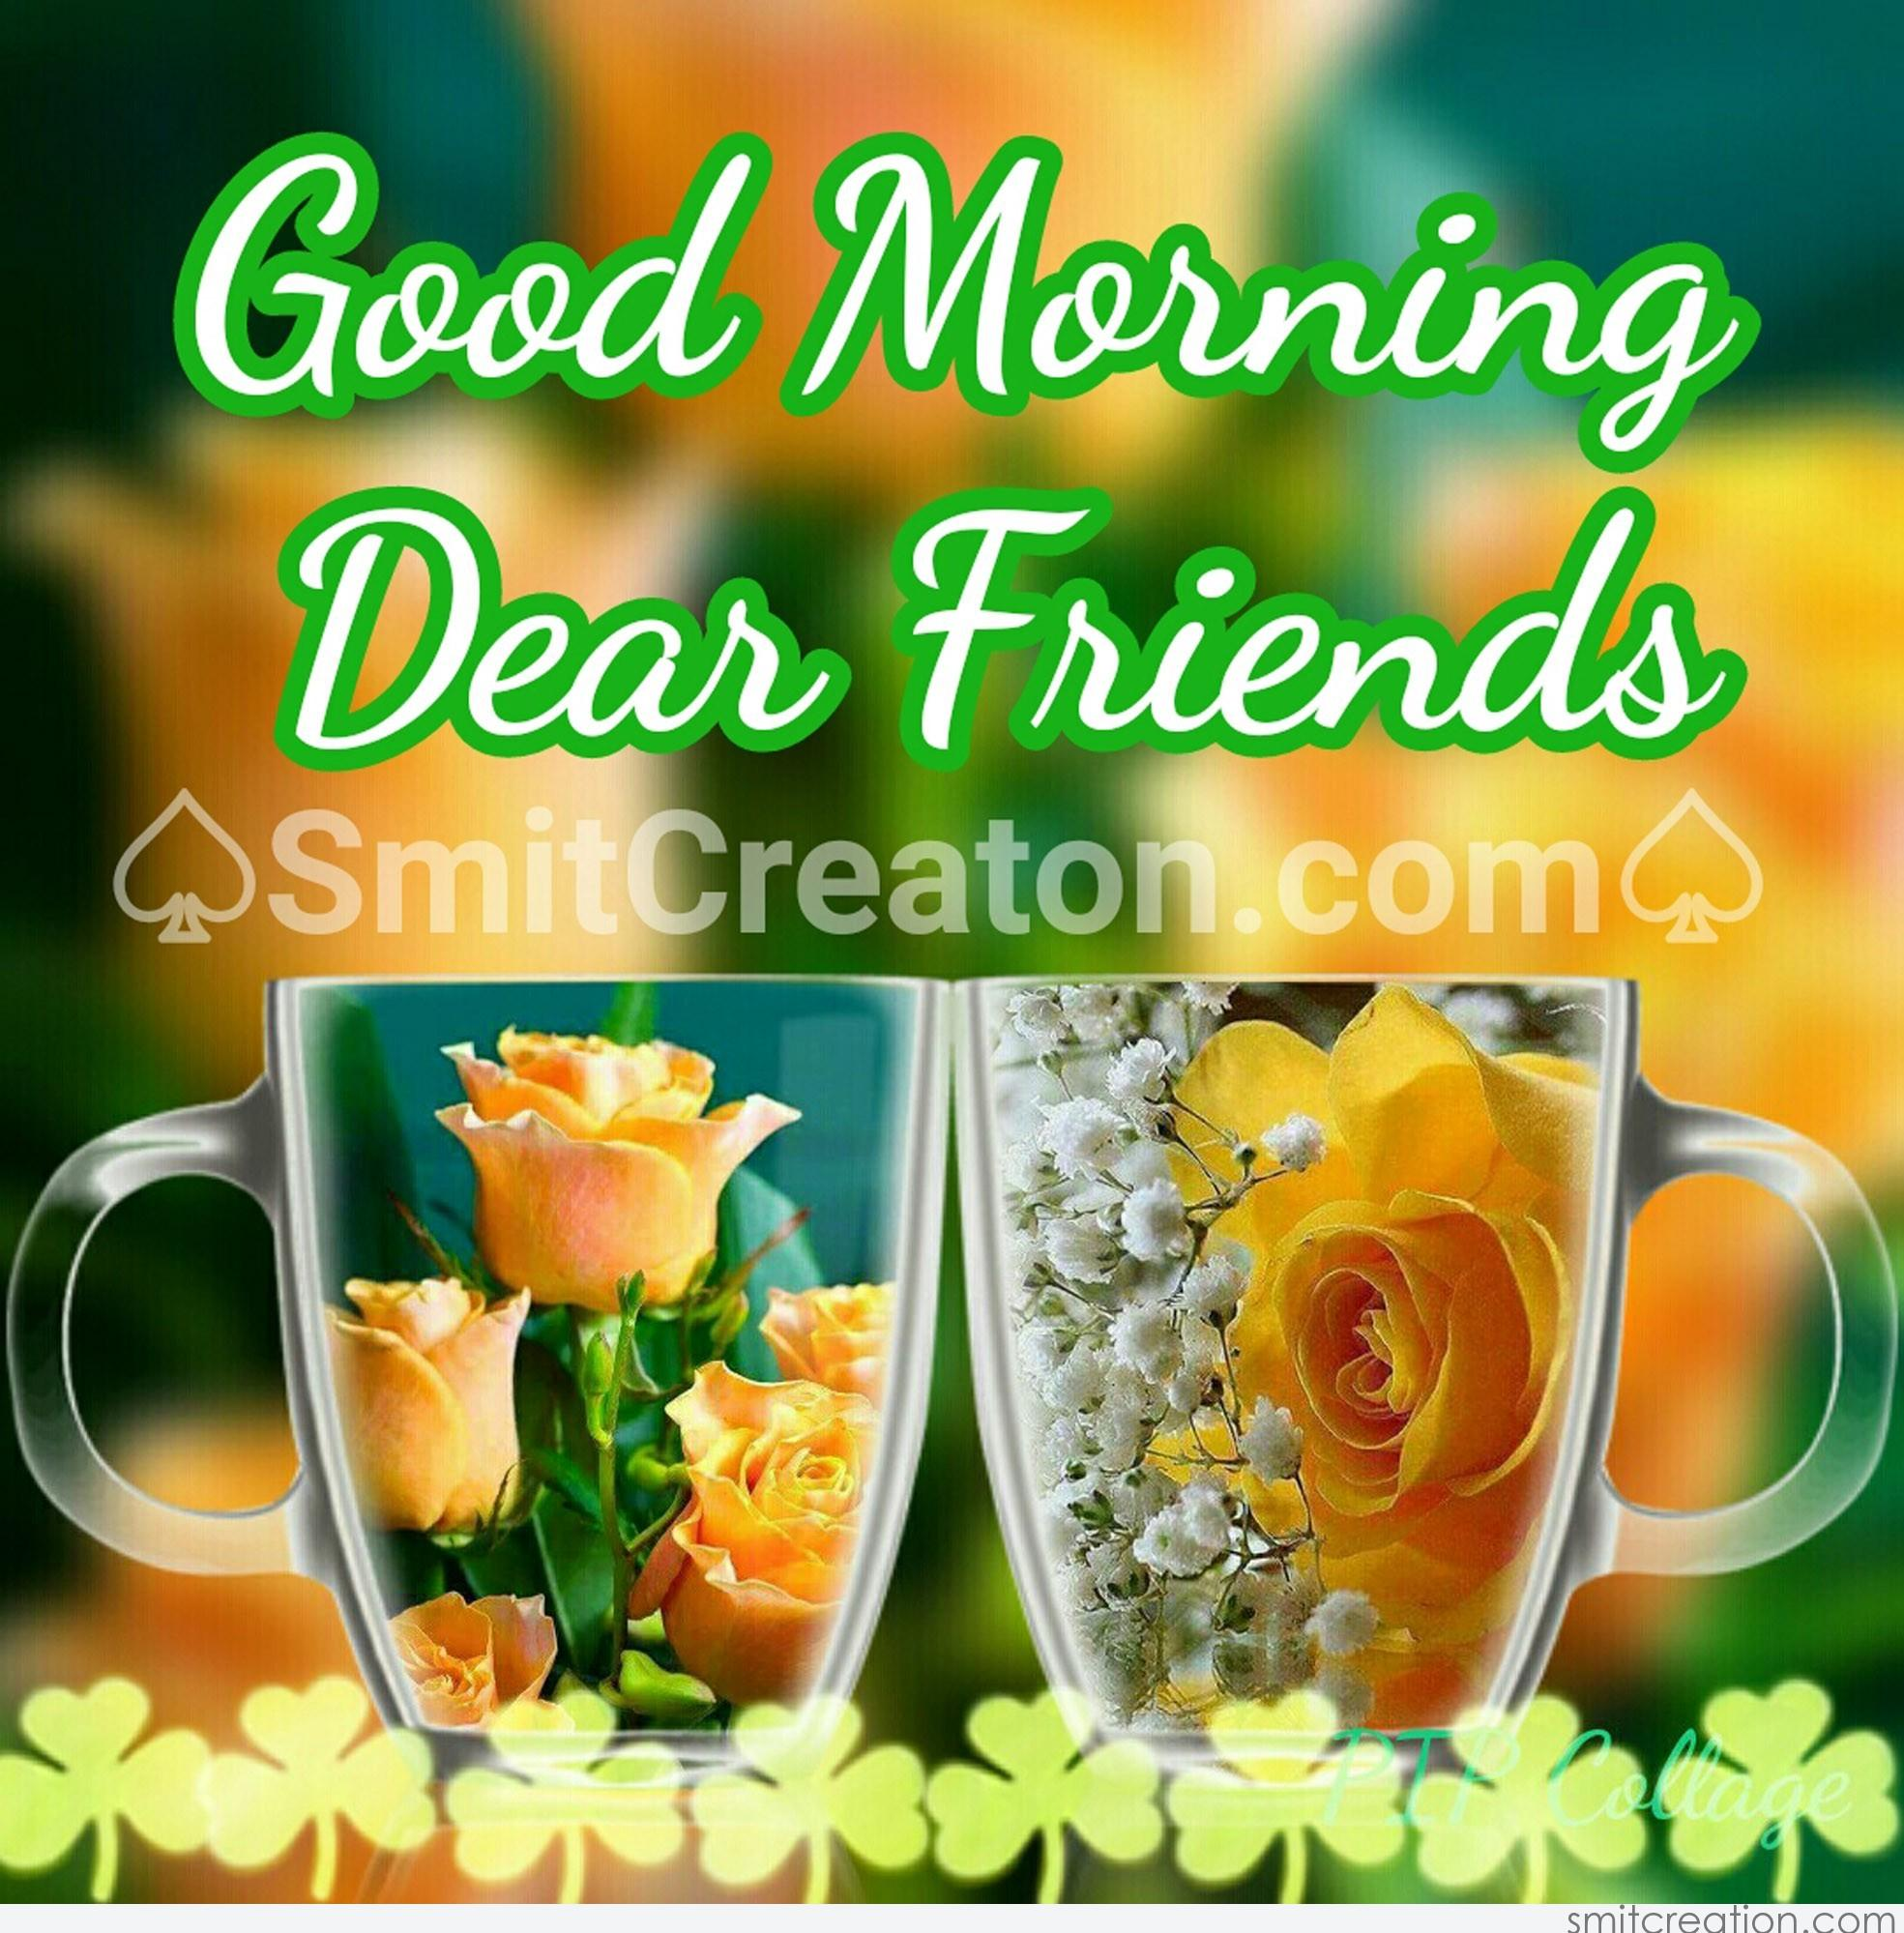 Good Morning Friends Pictures and Graphics - SmitCreation